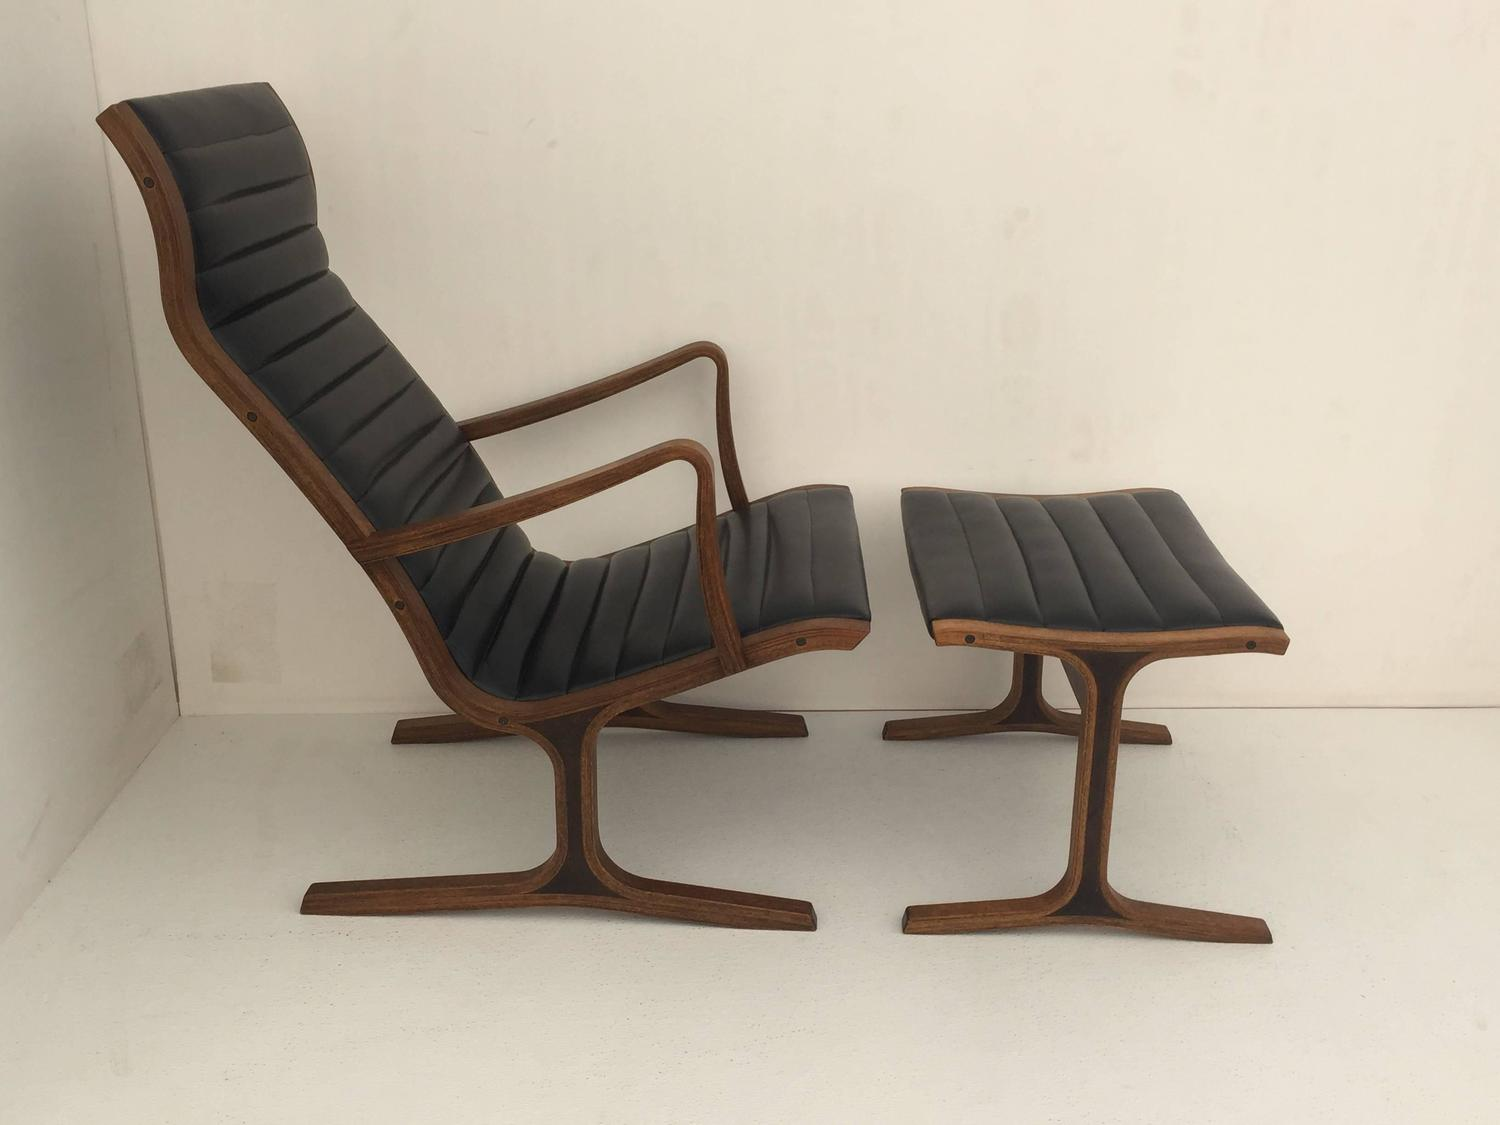 Heron Chair And Footrest By Tendo Mokko Japan For Sale At